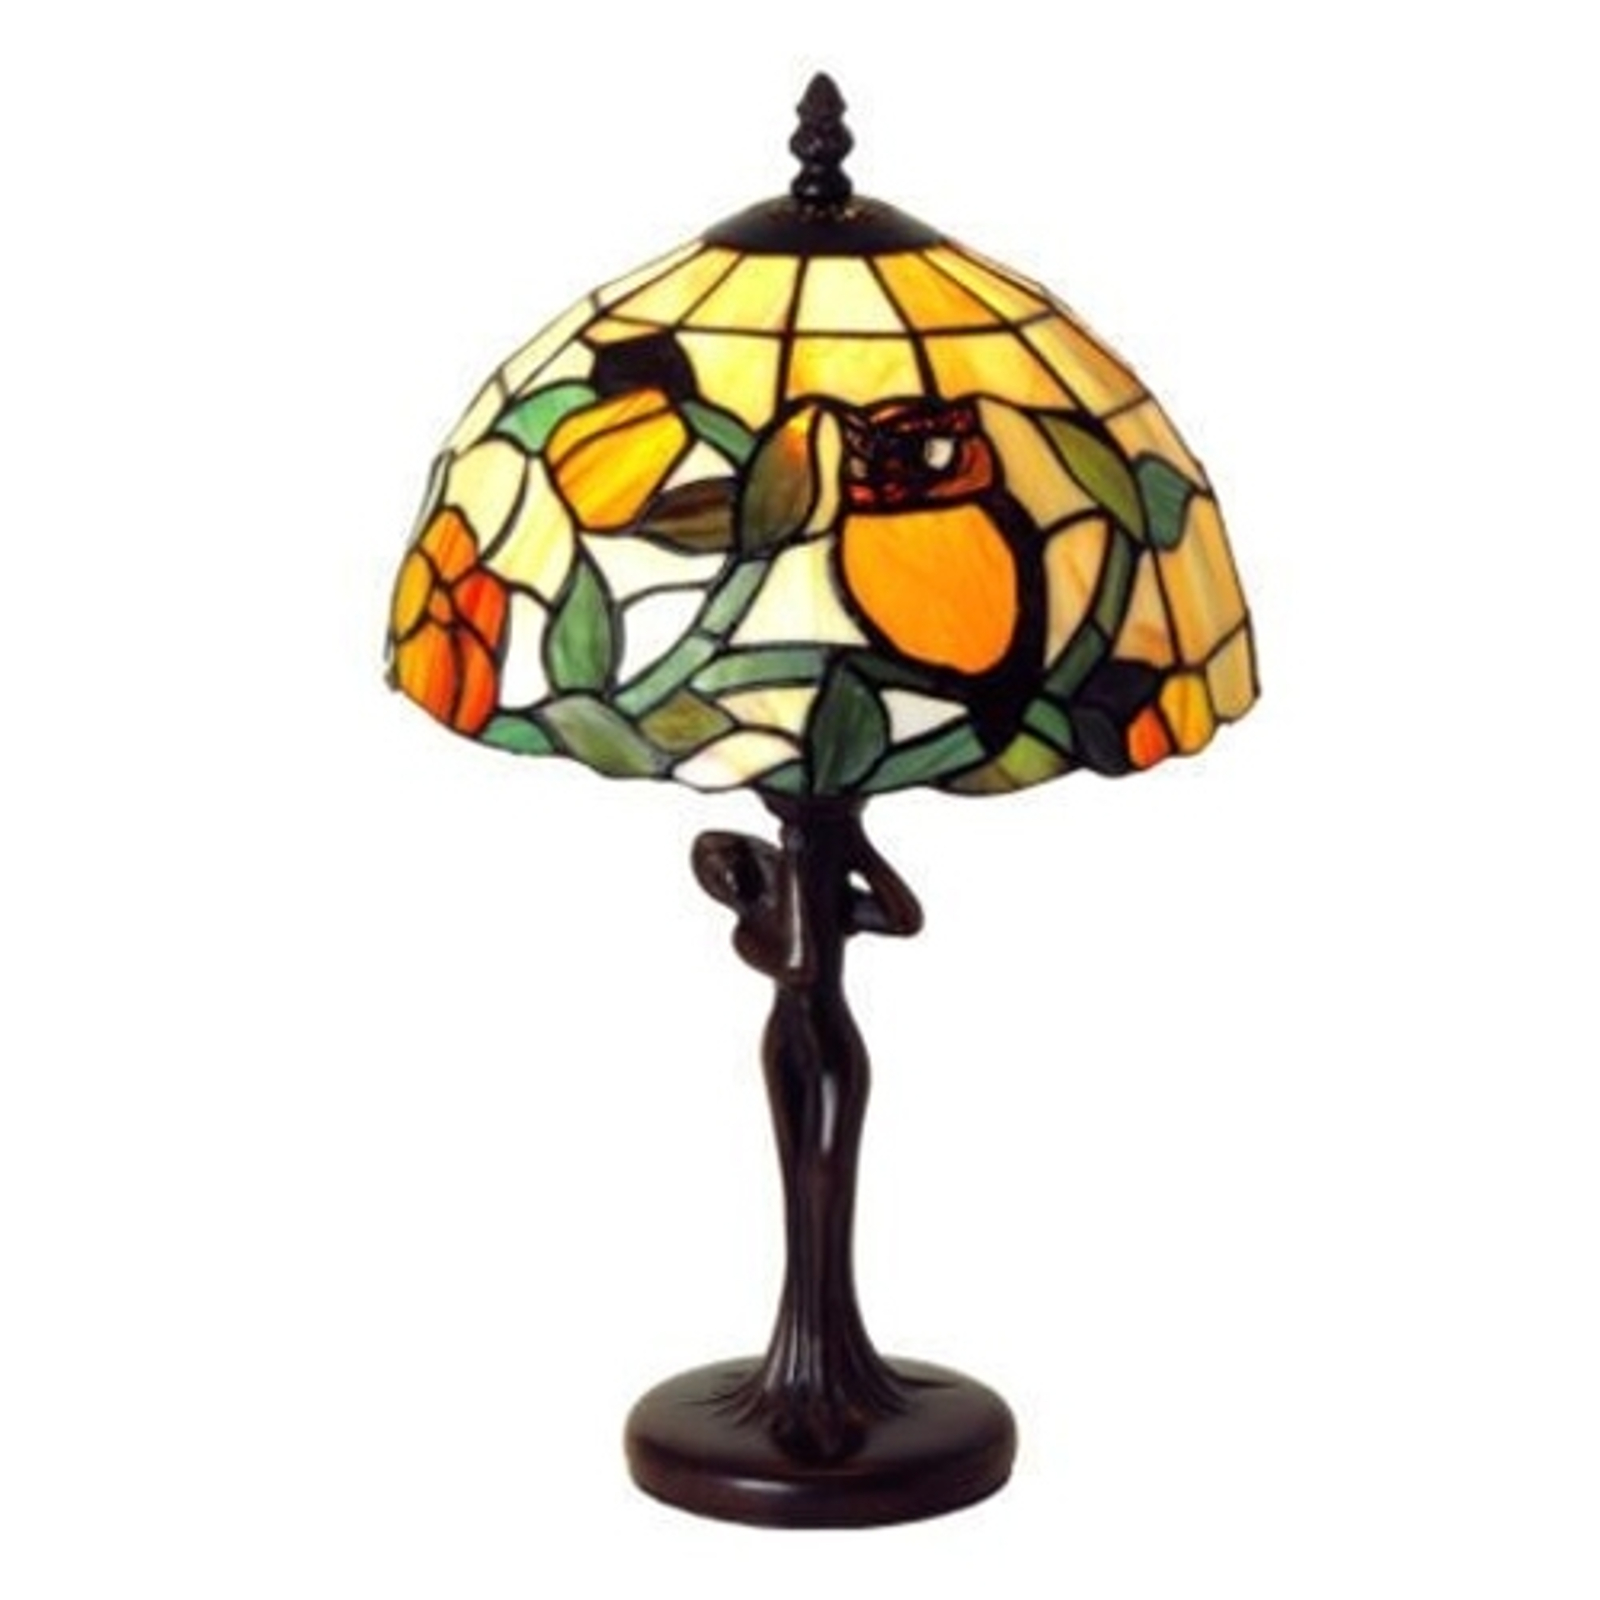 LIEKE- table lamp in the Tiffany style_1032199_1